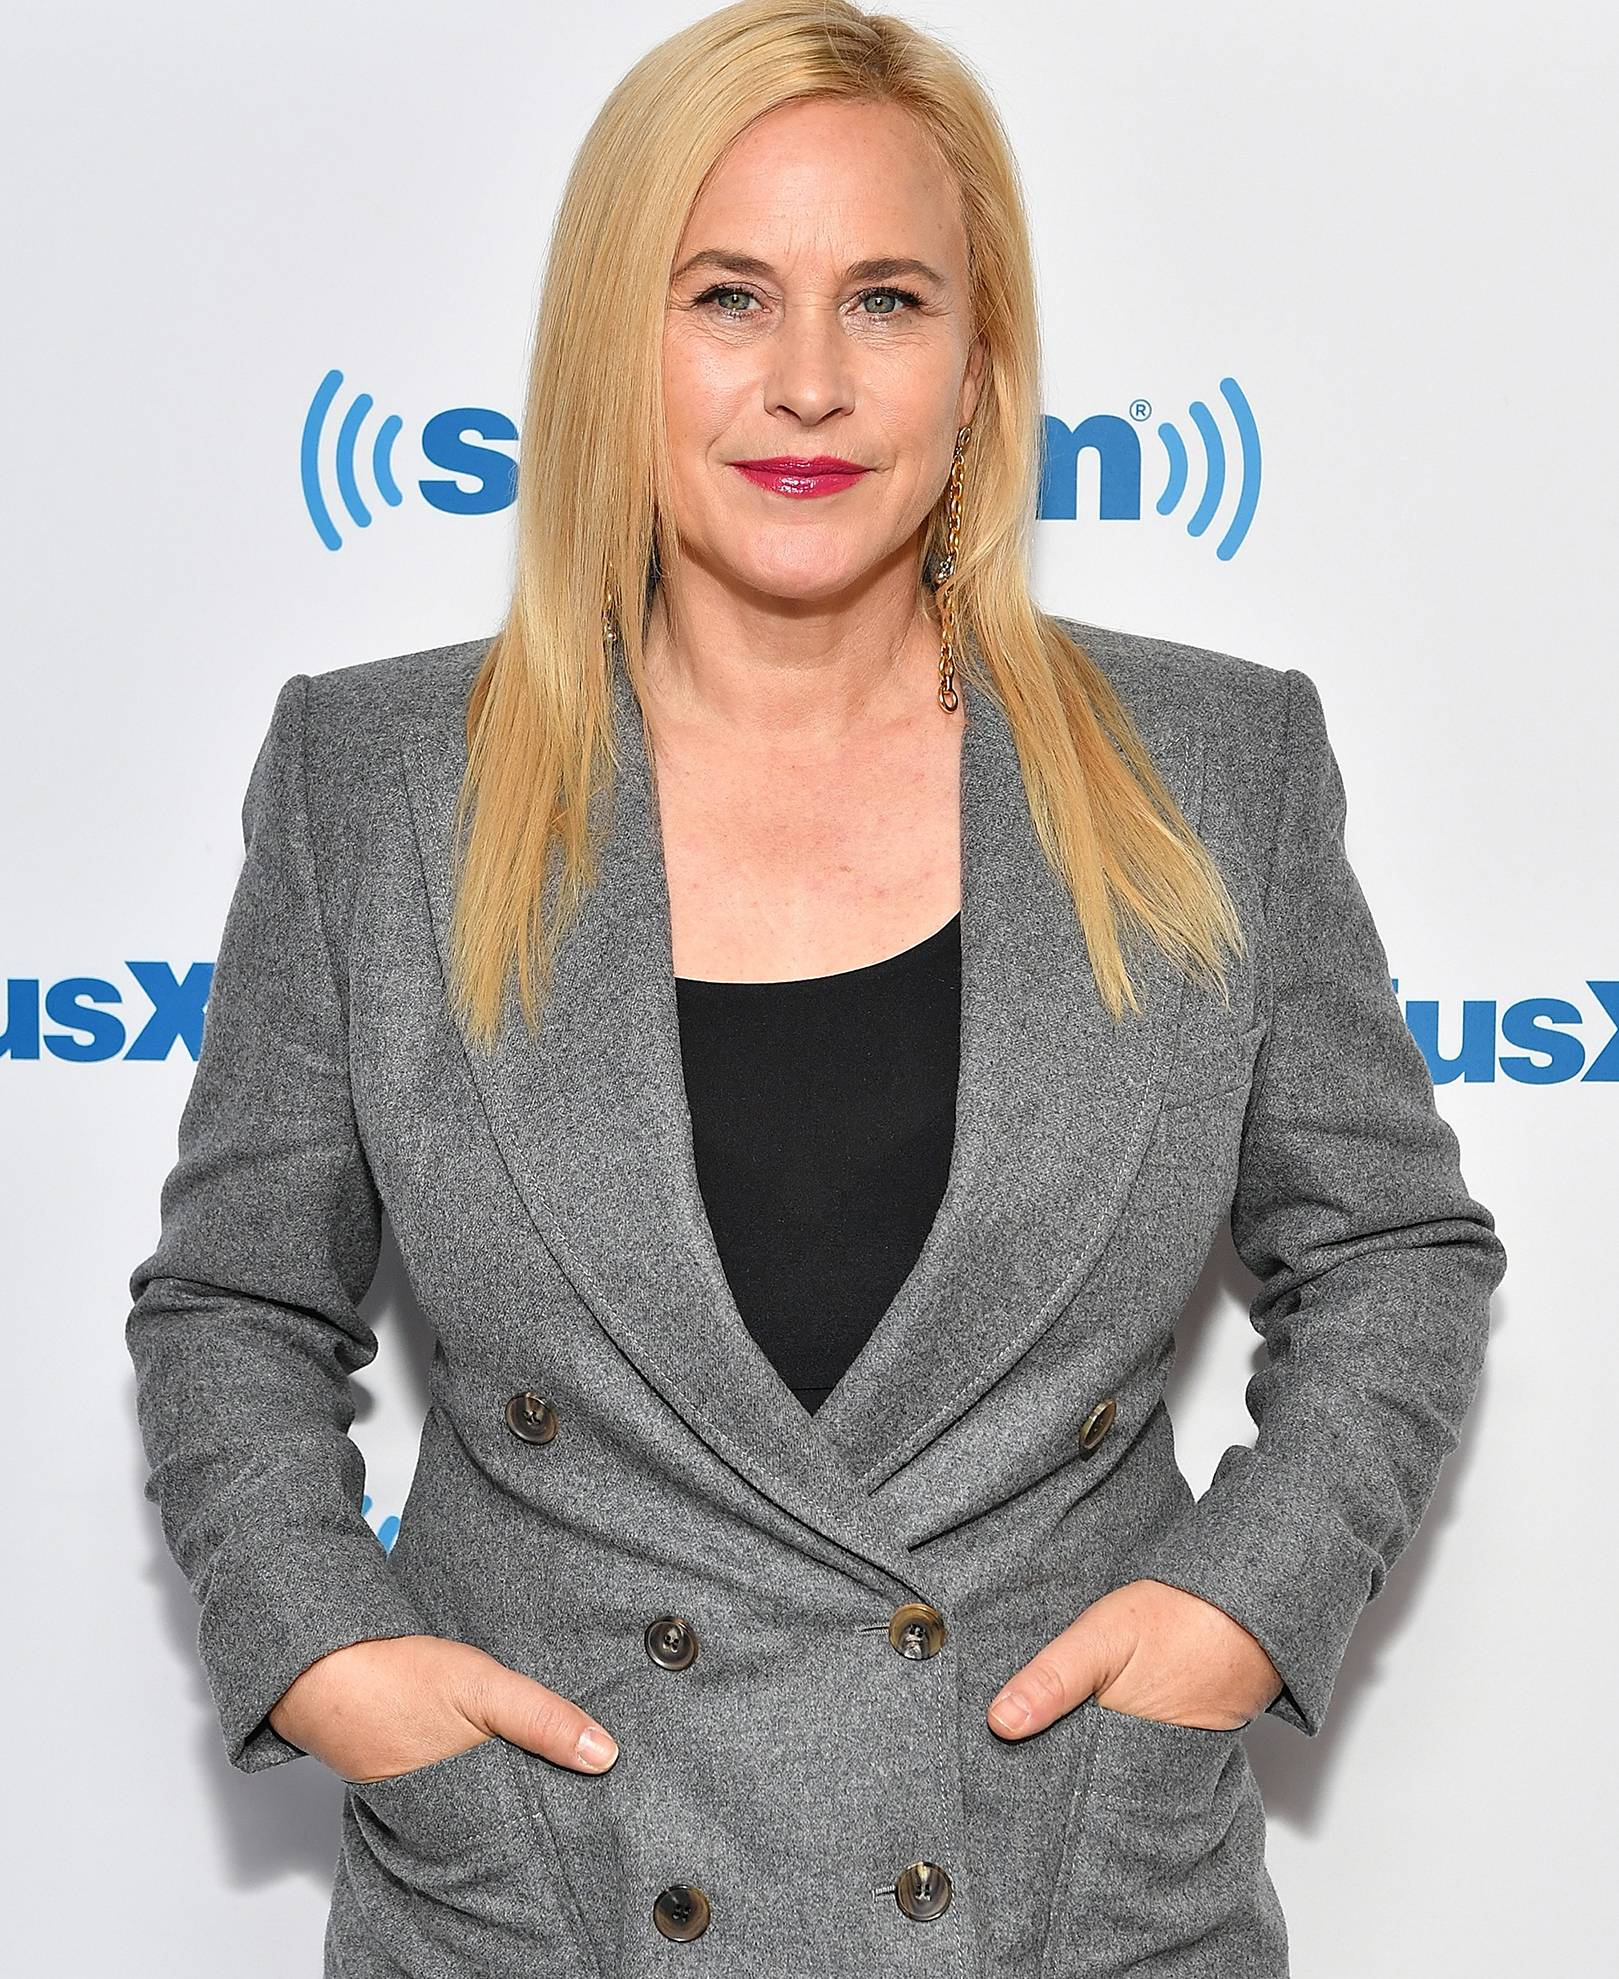 Patricia Arquette Net Worth